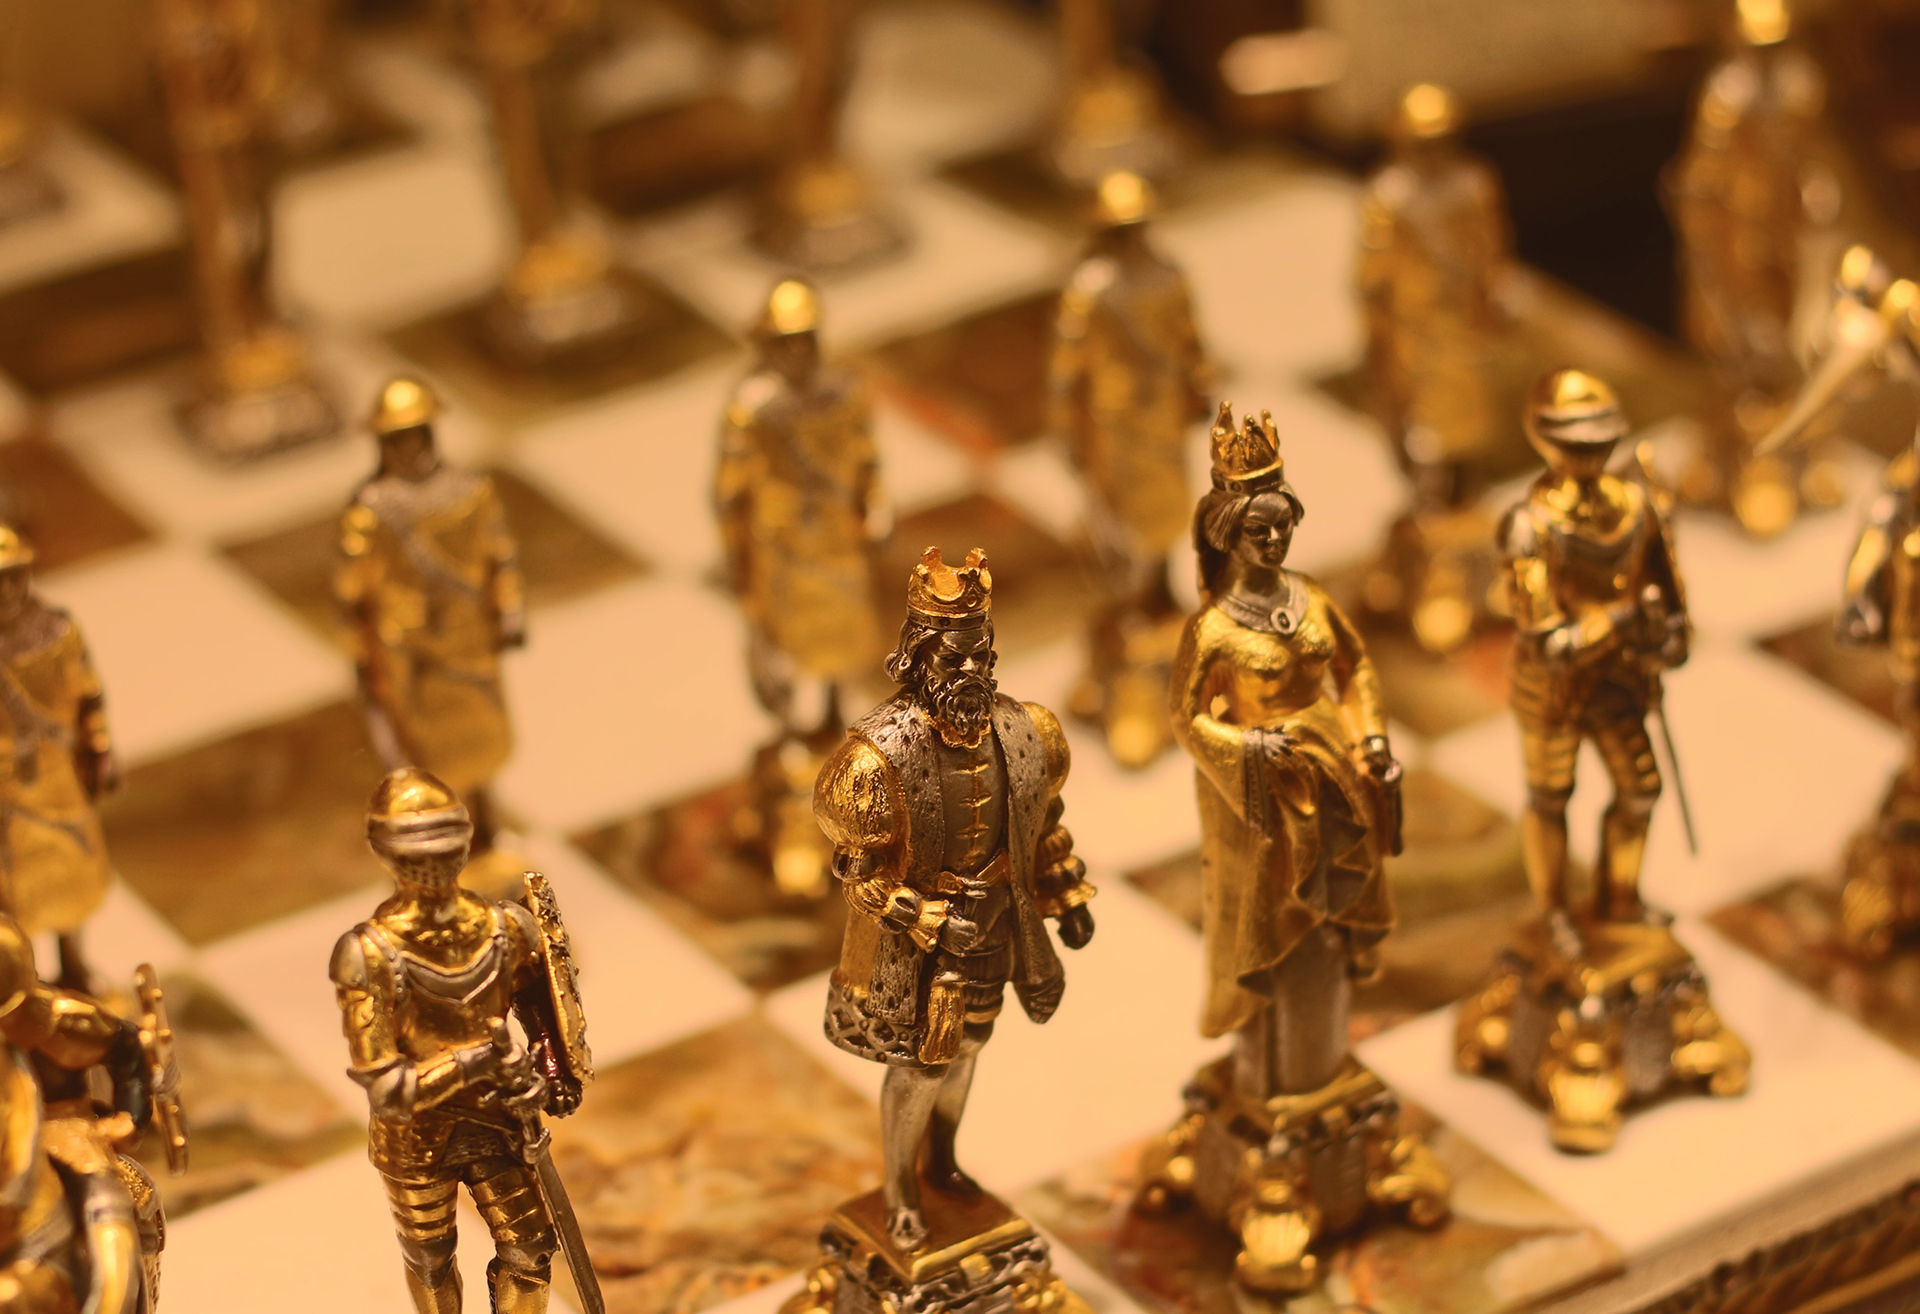 chess figures on a chess board; made of metal and painted in gold, showing in detail a king, queen, soldiers